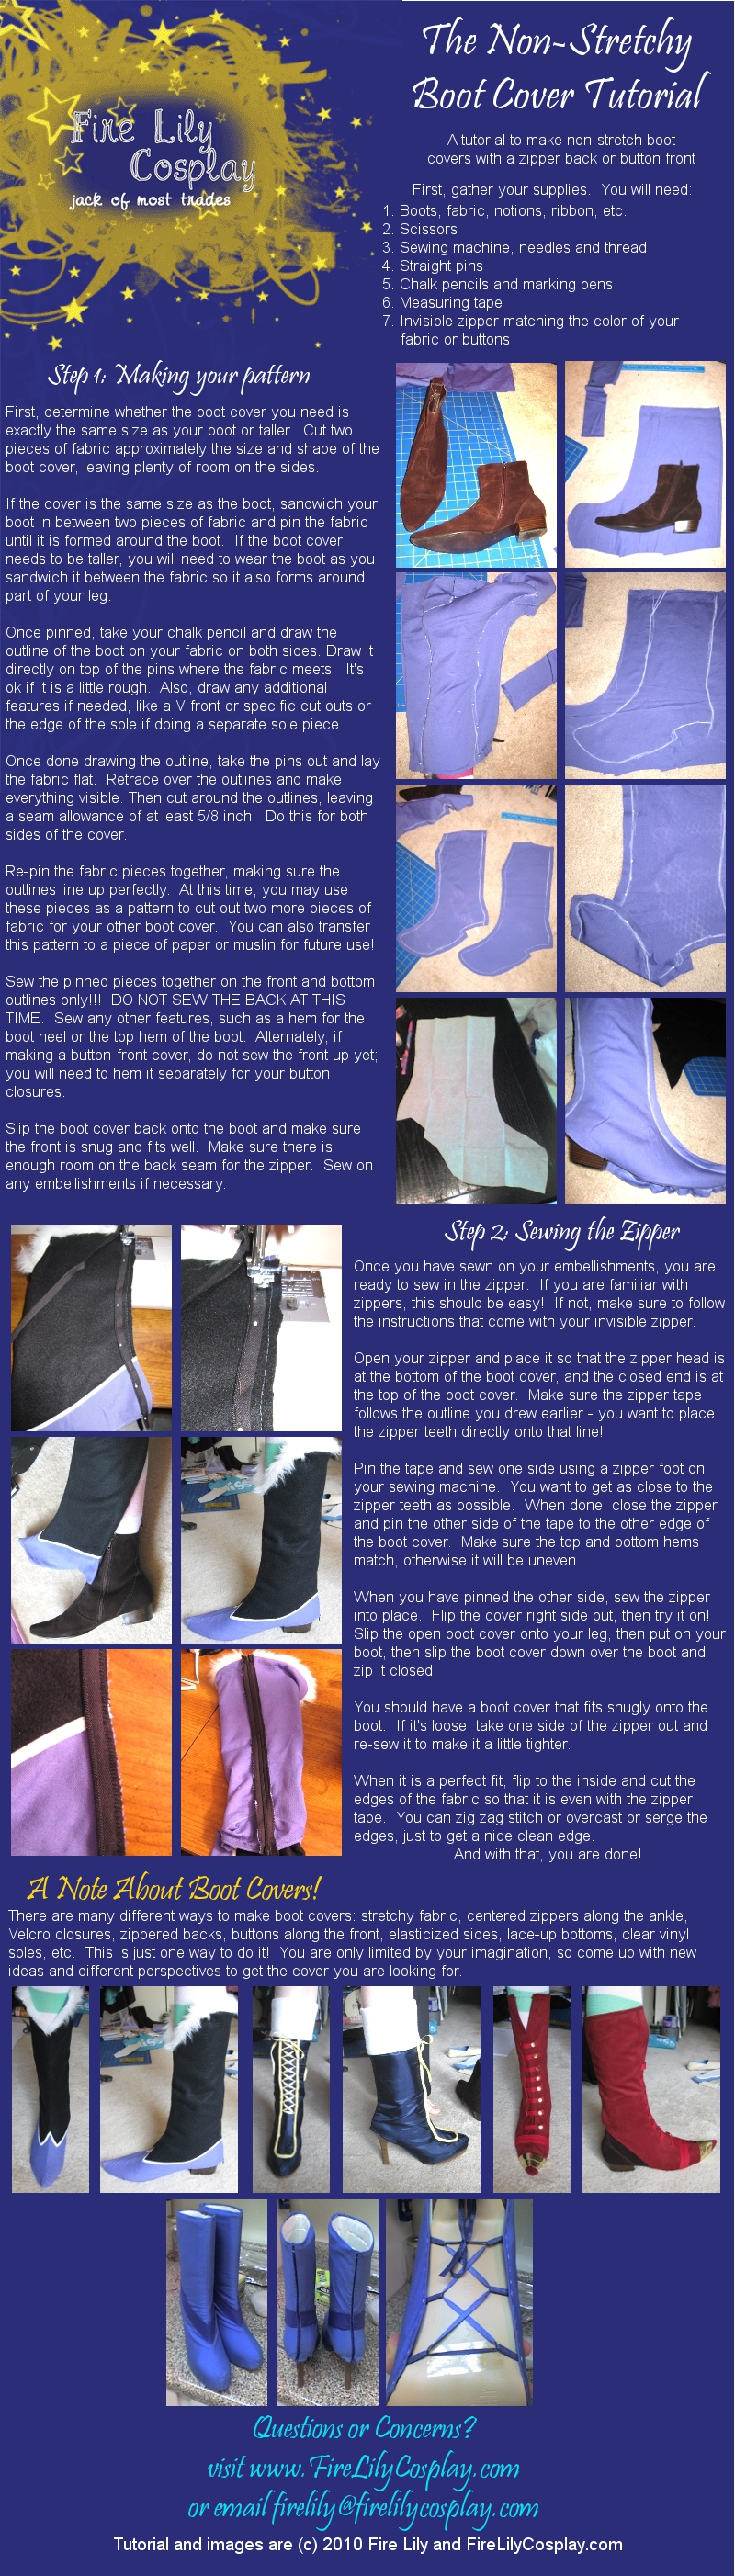 No-Stretch Boot Cover Tutorial by FireLilyCosplay on DeviantArt